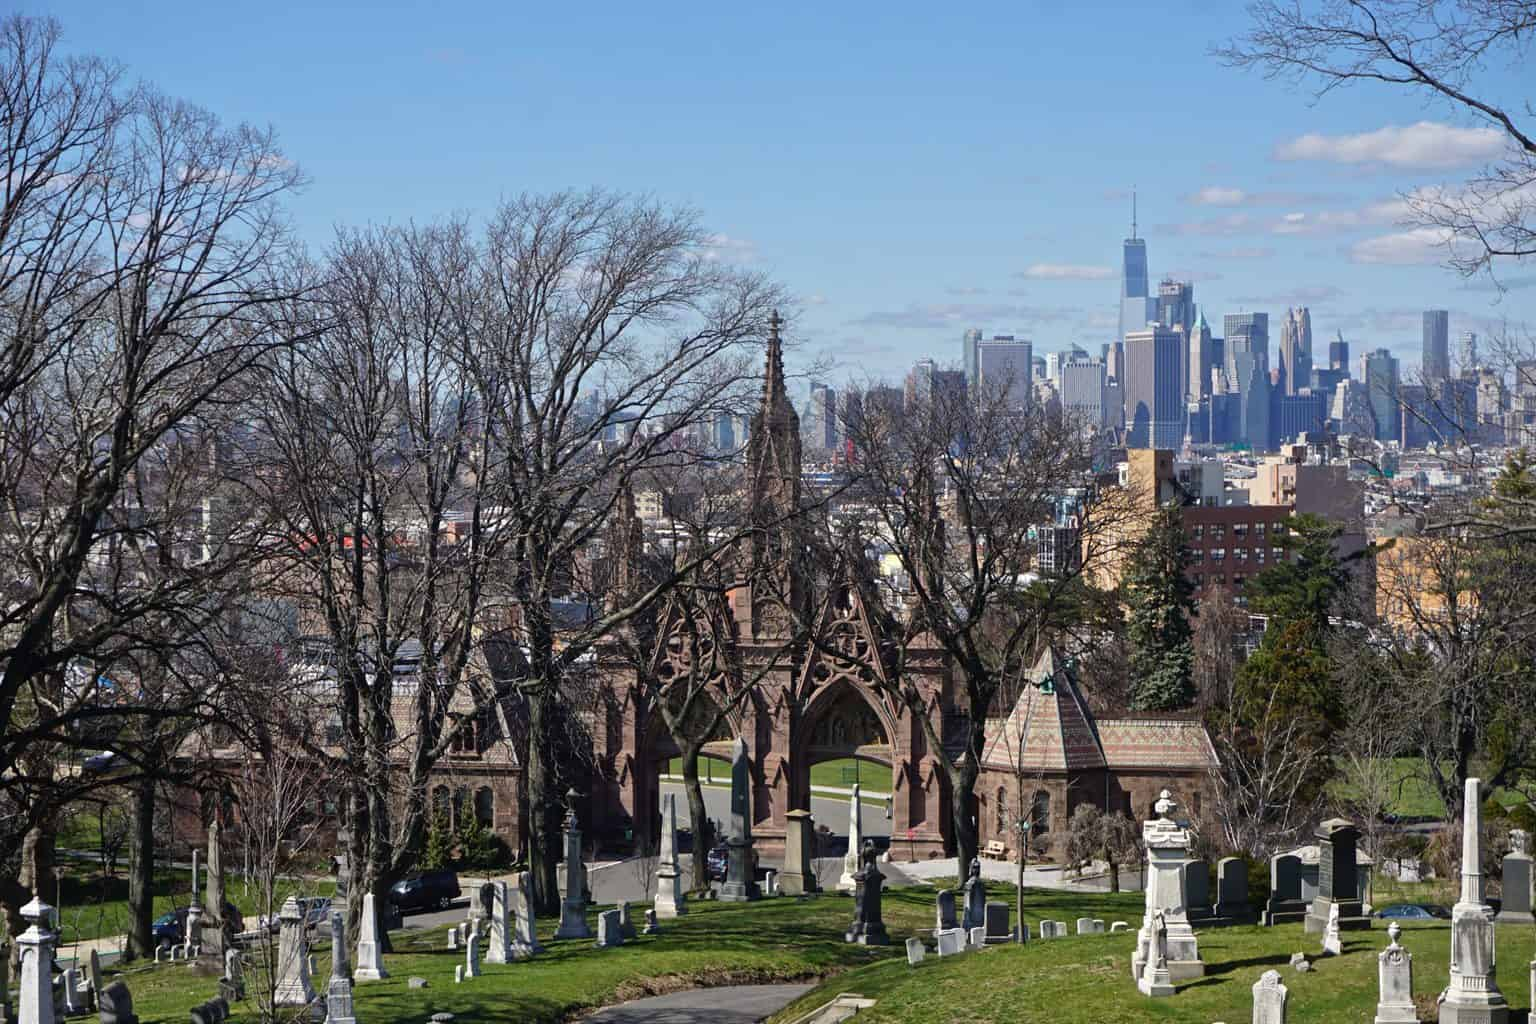 Discover some of the stunning views of the Manhattan skyline from Green-Wood Cemetery's Battle Hill.